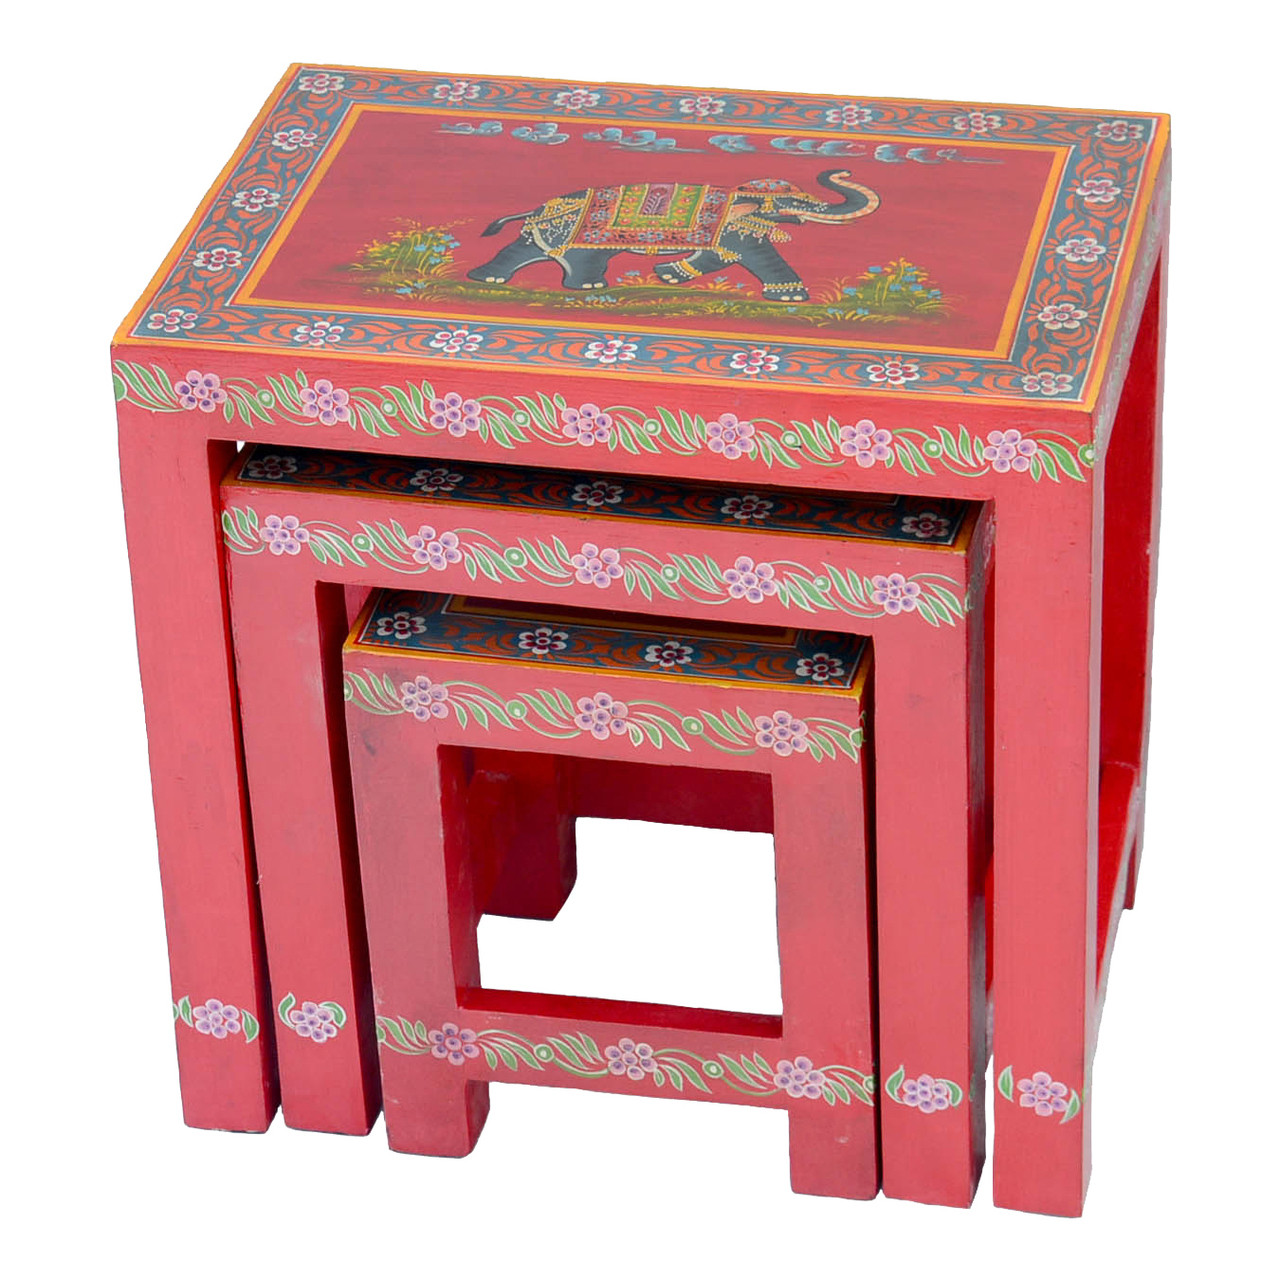 Nest of 3 Hand Painted Red Elephant Tables Fair Trade Present